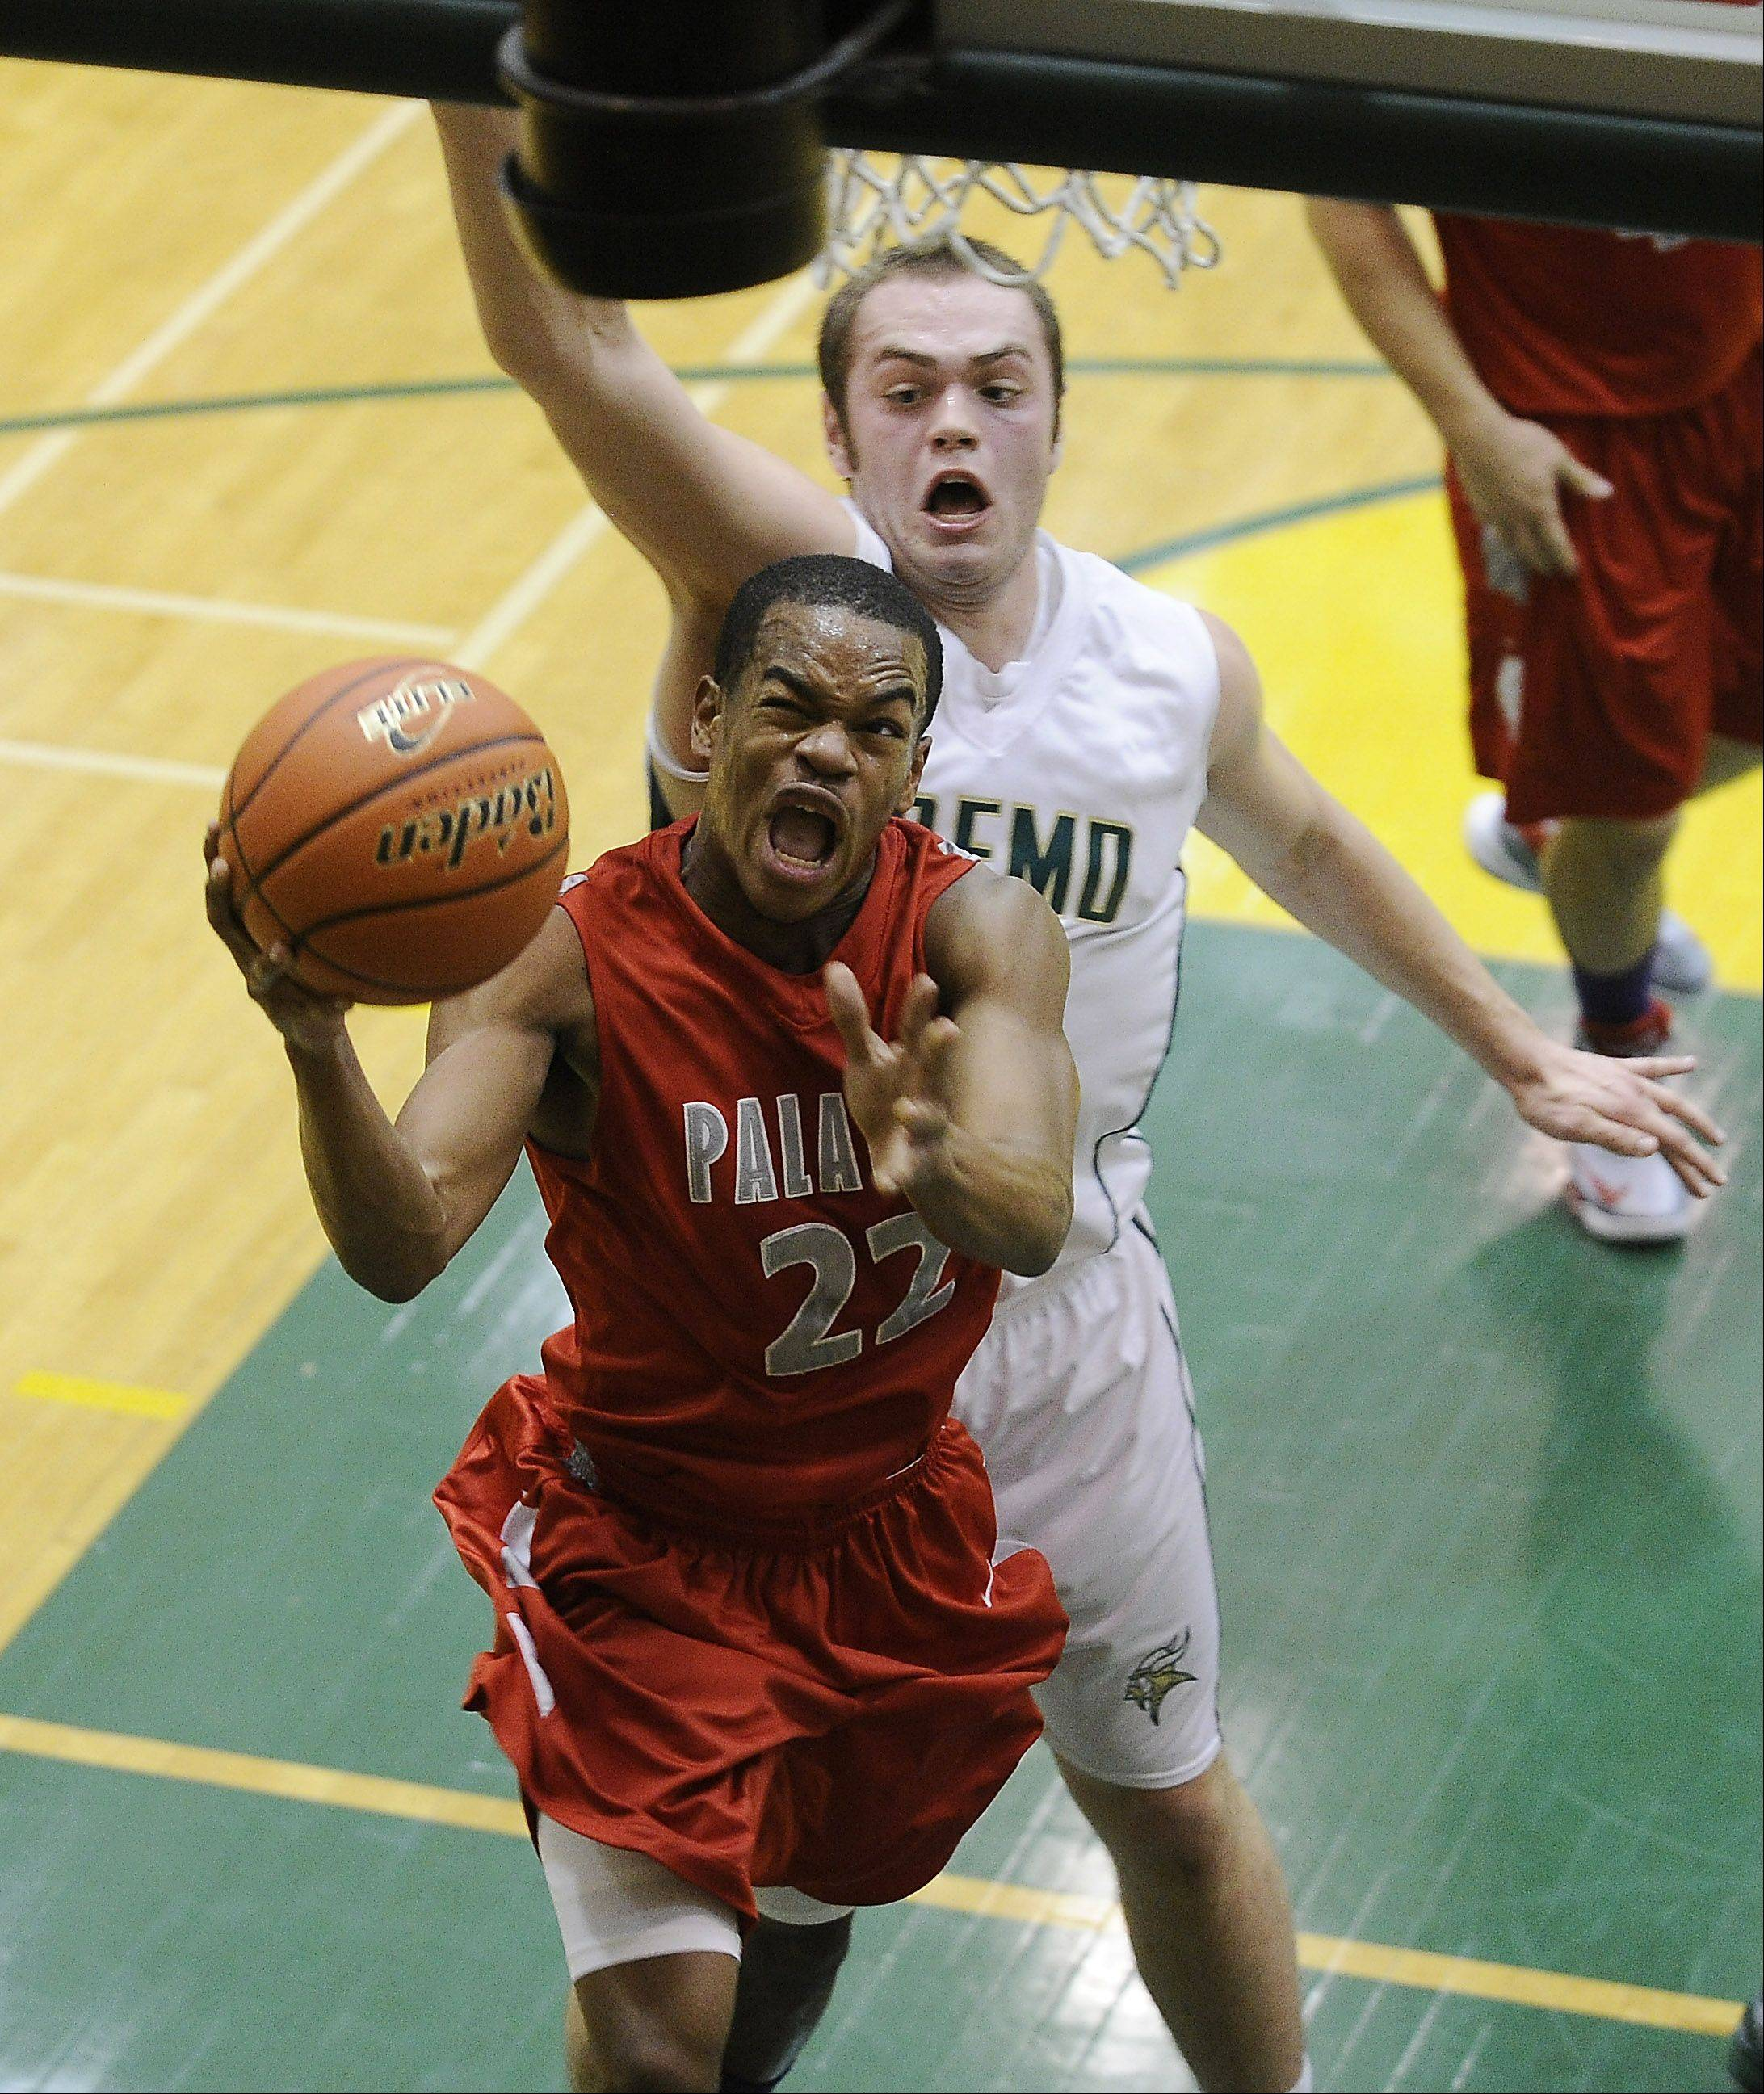 Palatine's Jordan Jarrett drives to the basket under pressure from Fremd's defense during Friday's game at Fremd.